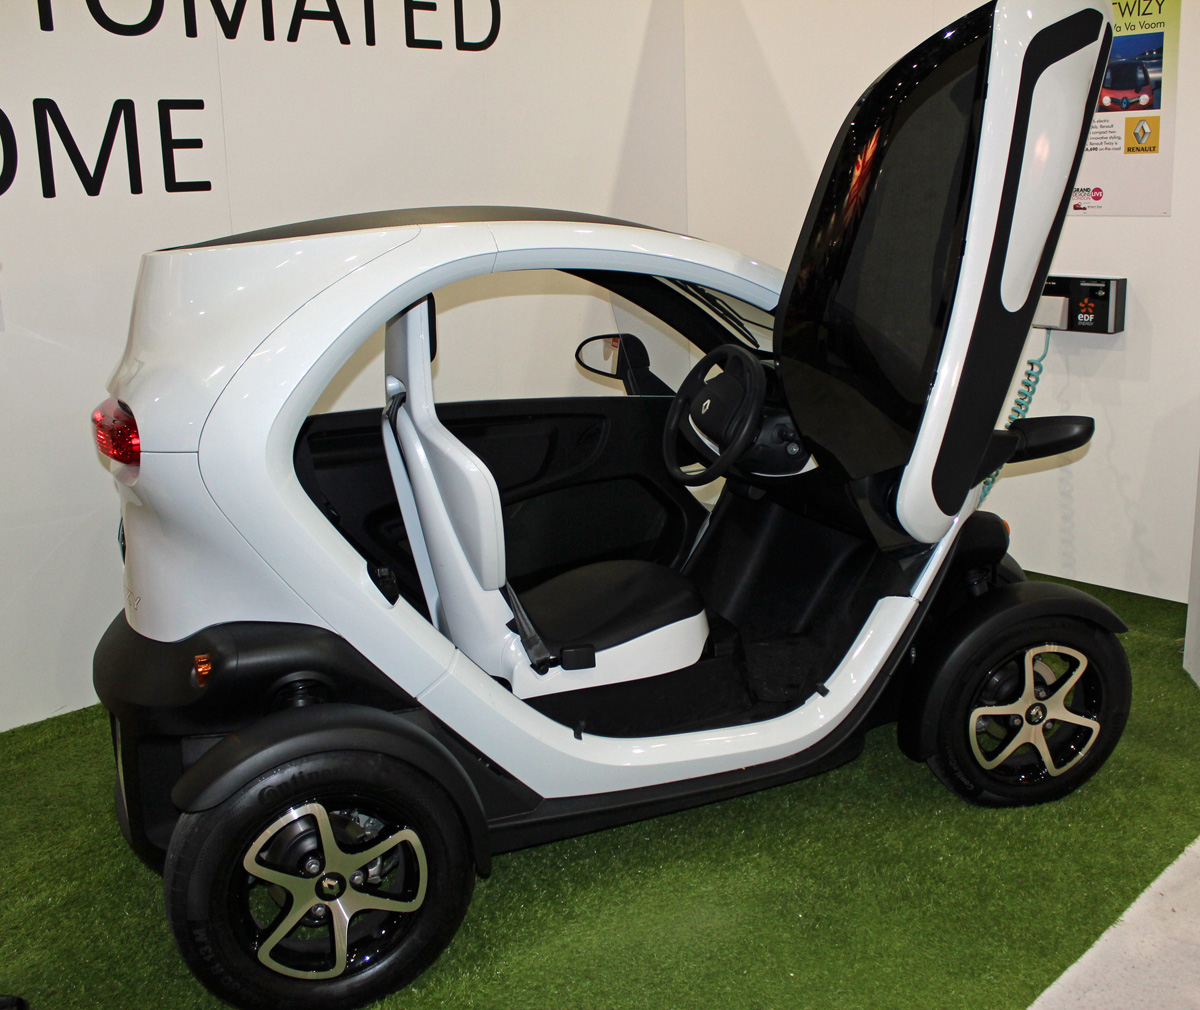 Renault Twizy at Grand Designs Live Show (Photo: T. Larkum)